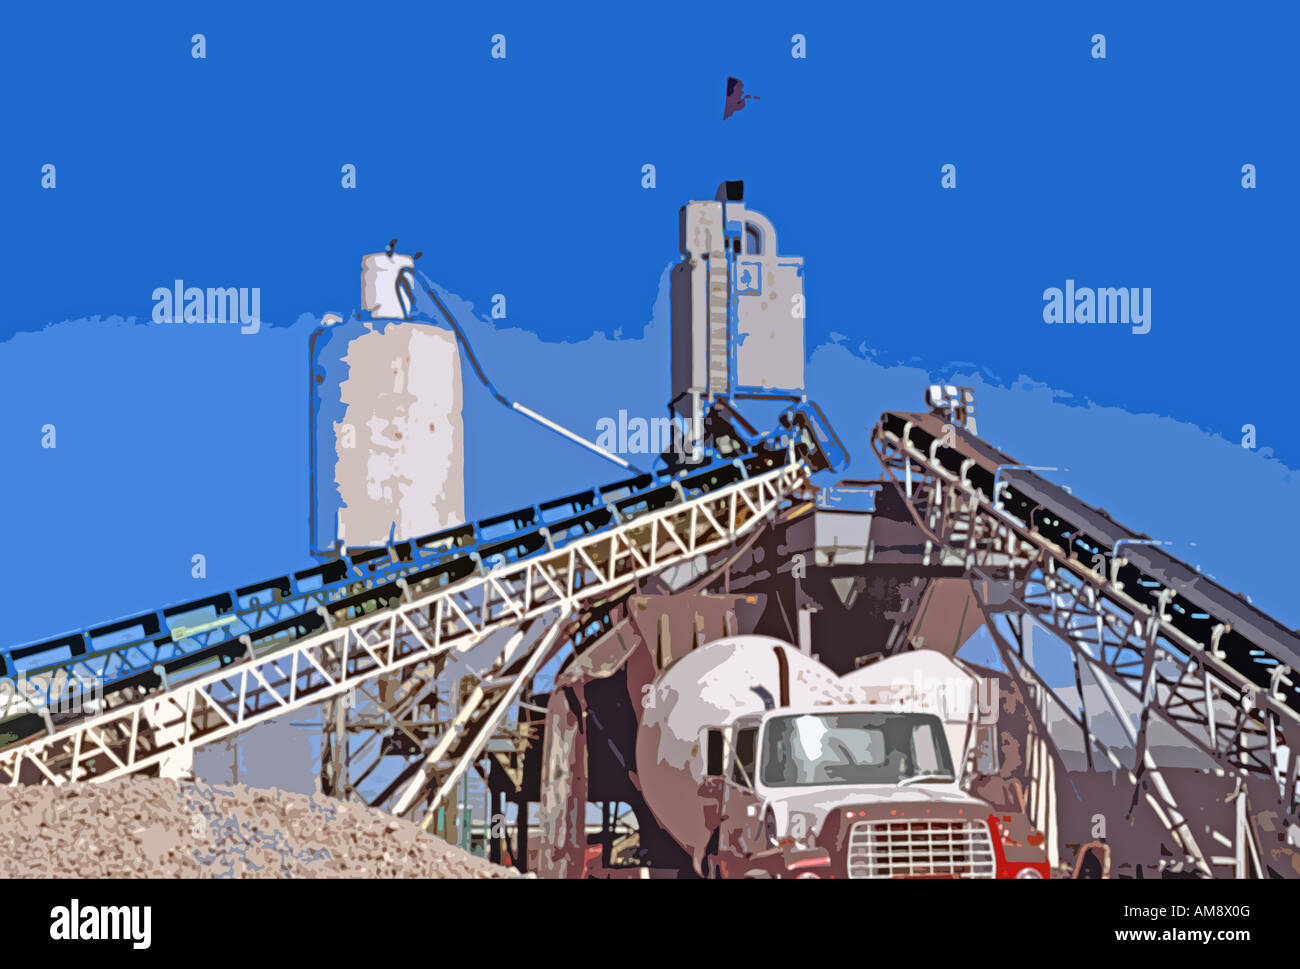 Biggest Concrete Plant In The Usa : A cement manufacturing plant in salt lake city utah usa